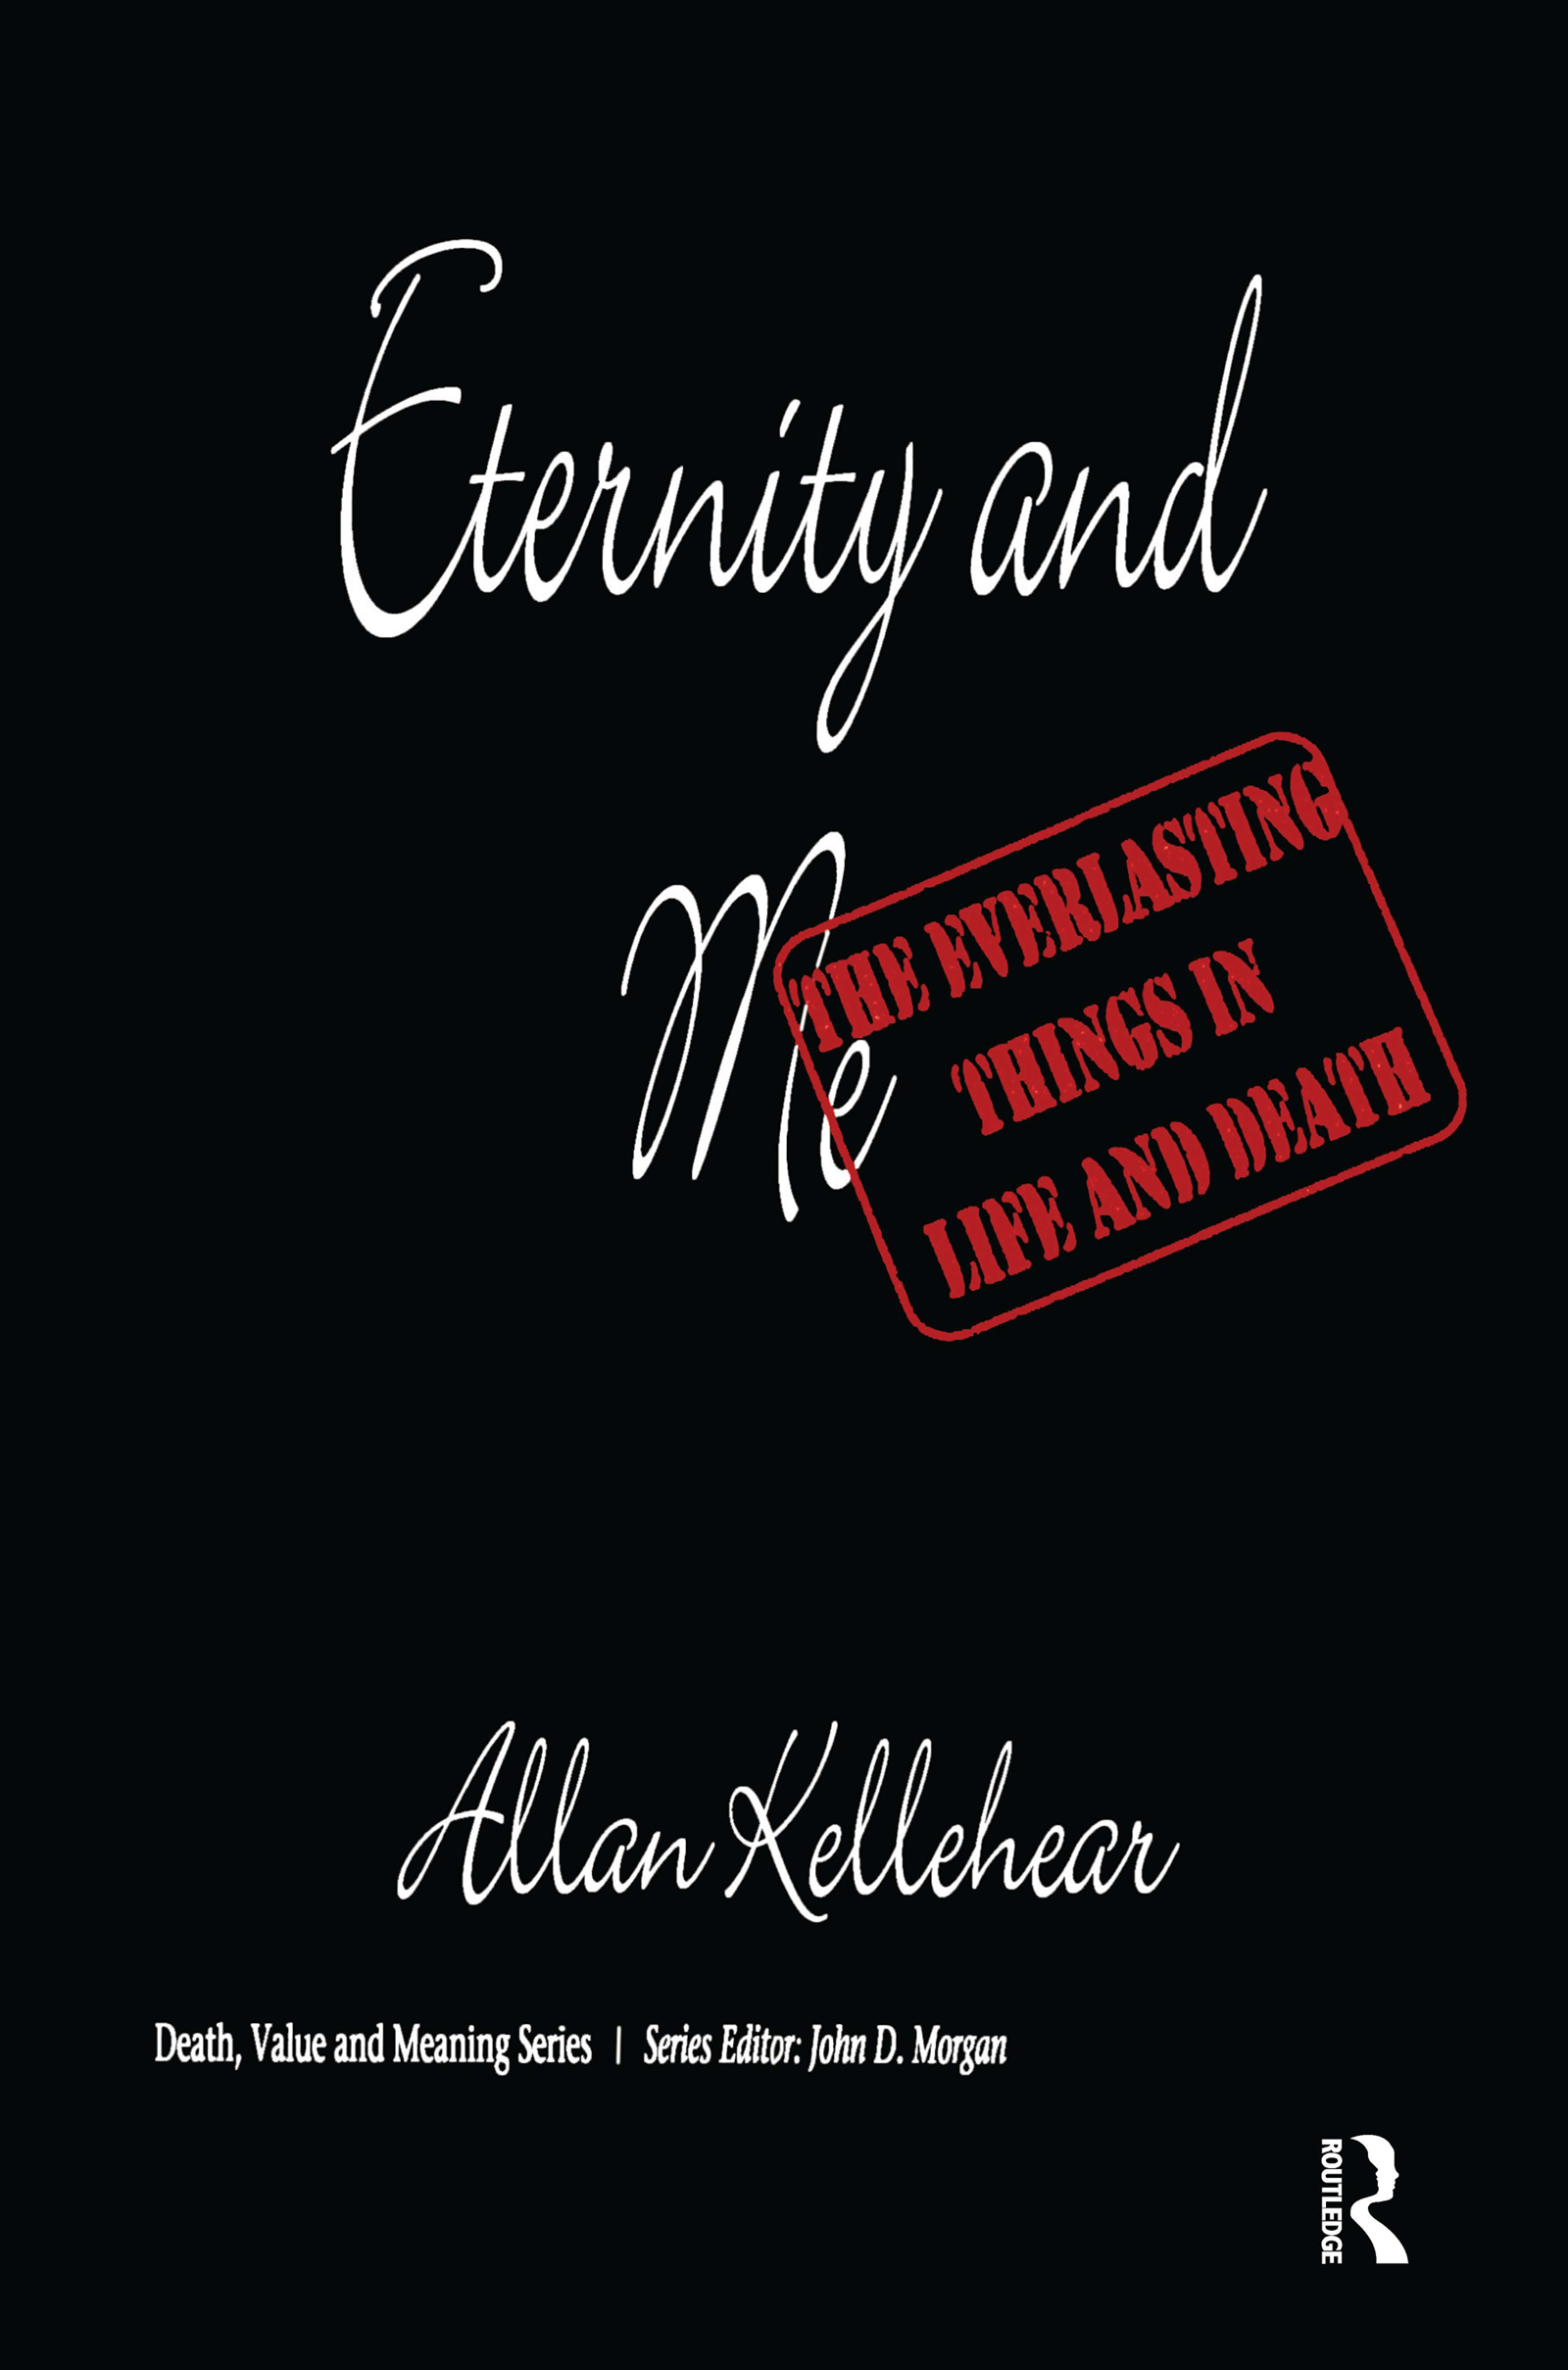 Eternity and Me: The Everlasting Things in Life and Death book cover